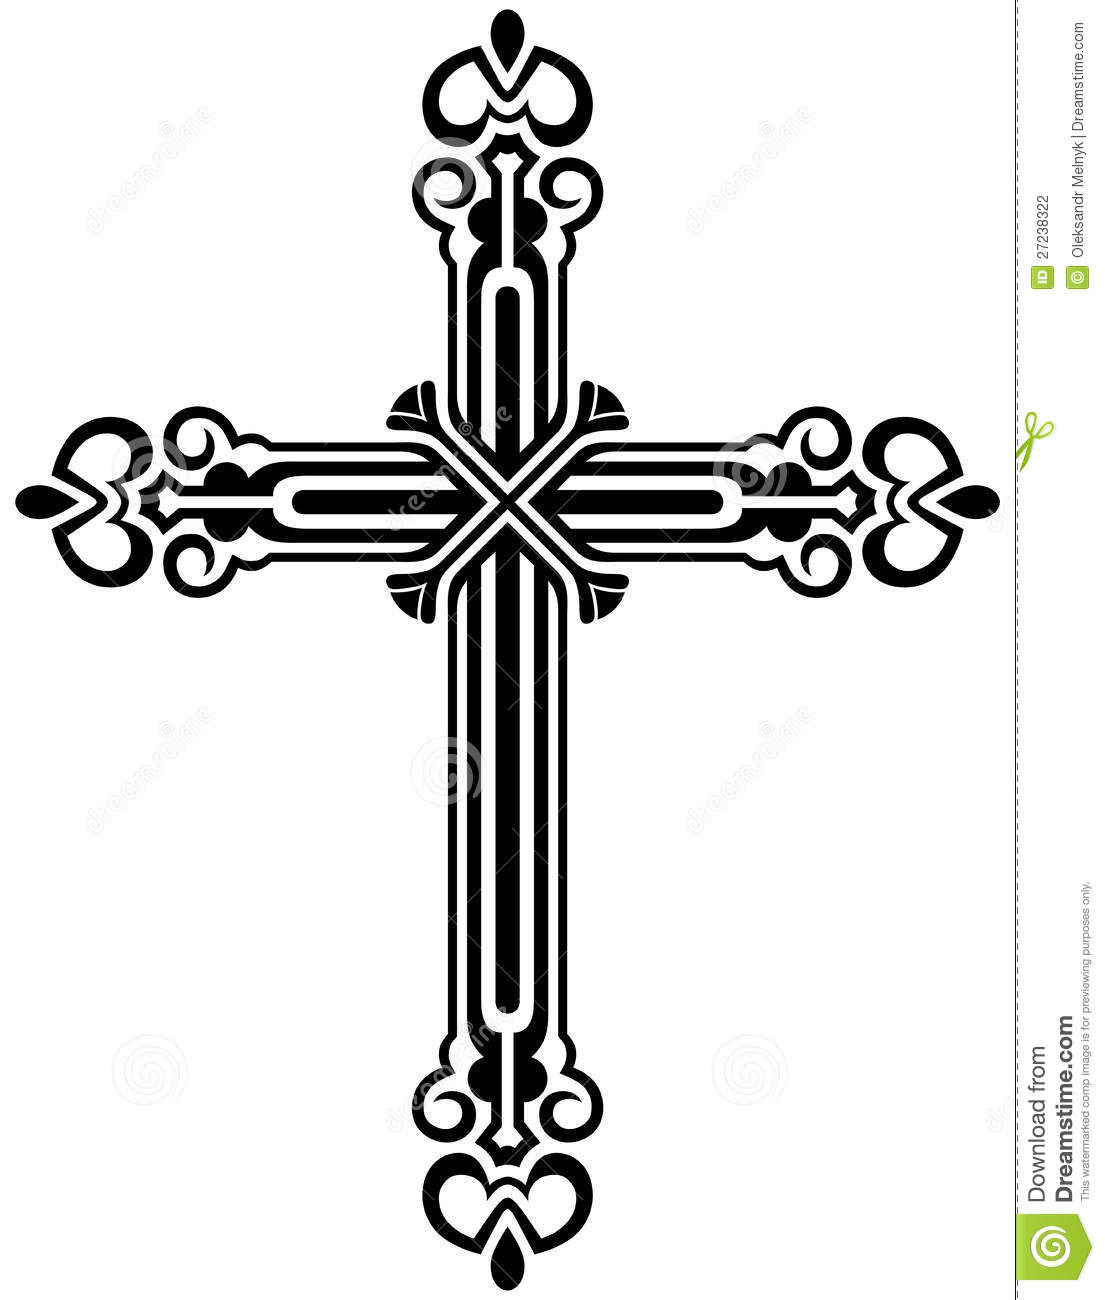 Crucifix Clipart Black And White Clipart Panda